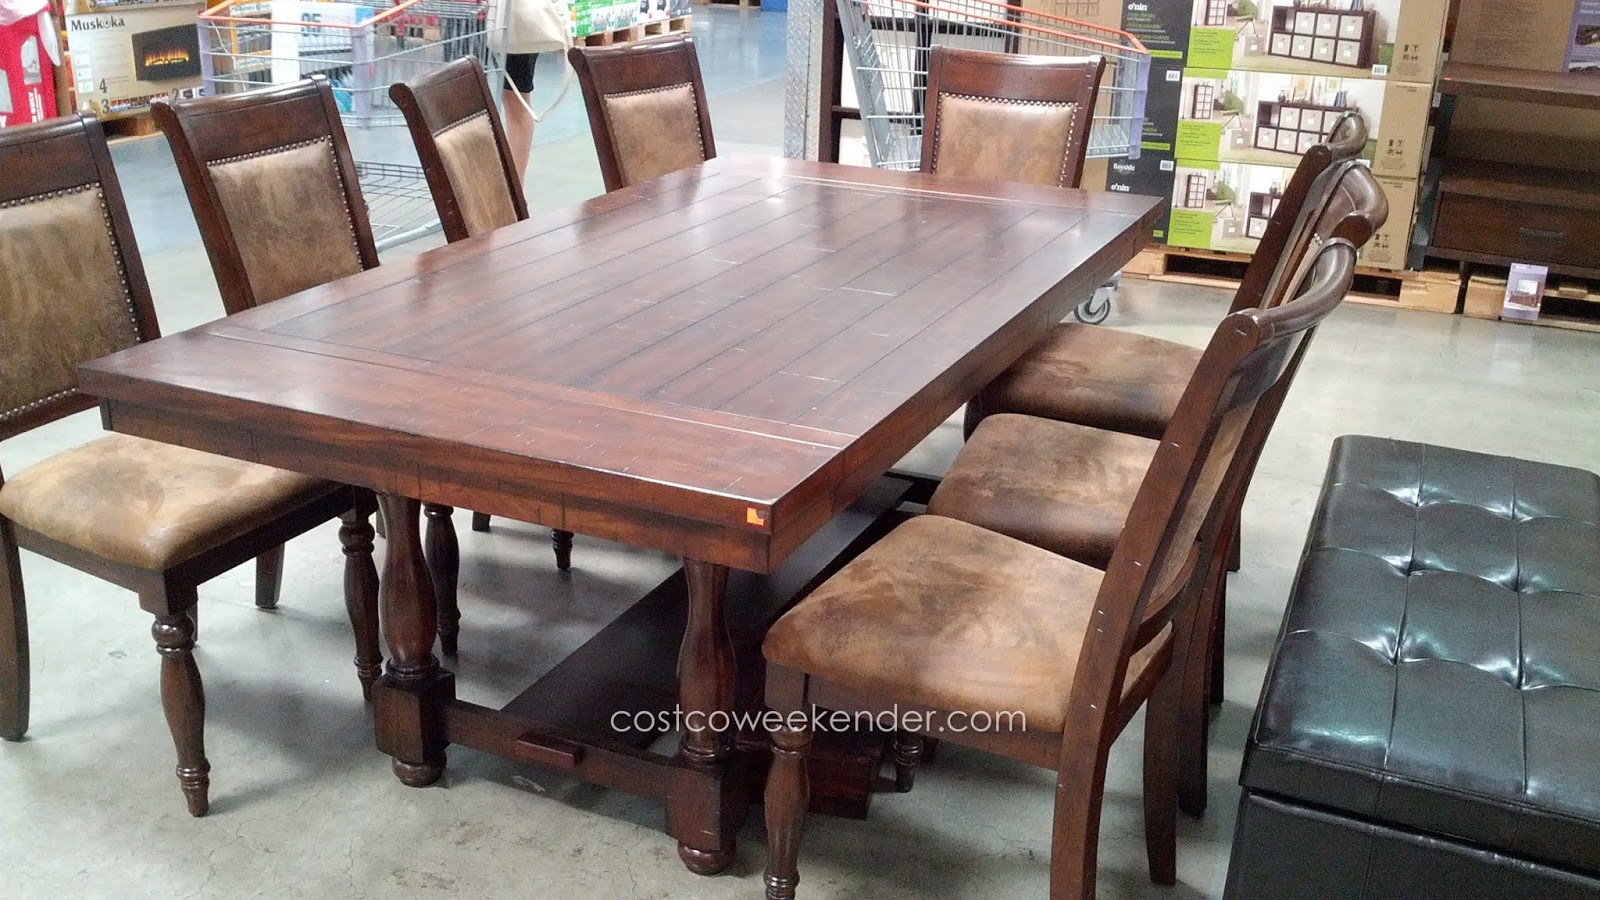 Costco Dining Set Hillsdale Tremonte 9 Piece Dining Set Costco Weekender